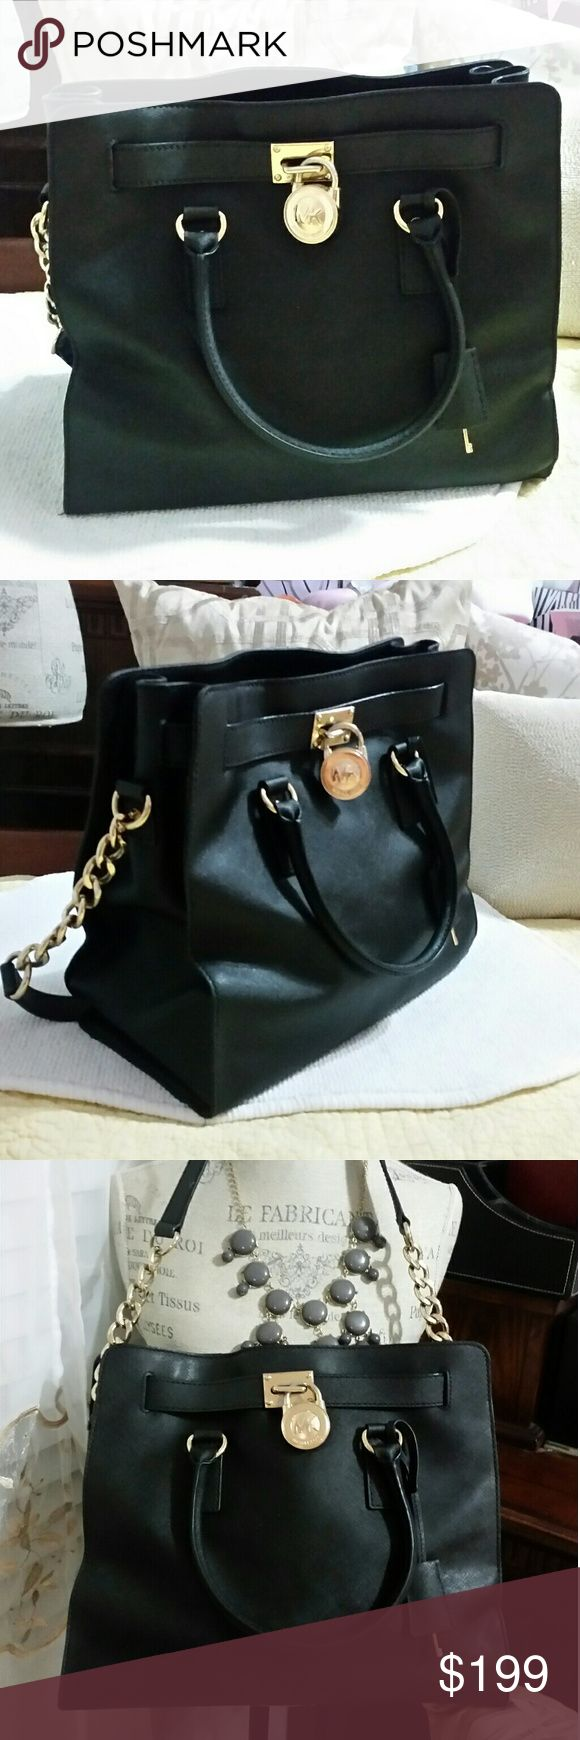 Michael Kors Large Hamilton Black Bag Authentic Pre loved Michael Kors Large Hamilton Black Bag in very good condition no stain or faded or scratch in and out a little discoloration on the lock other than that in perfect condition Michael Kors Bags Totes